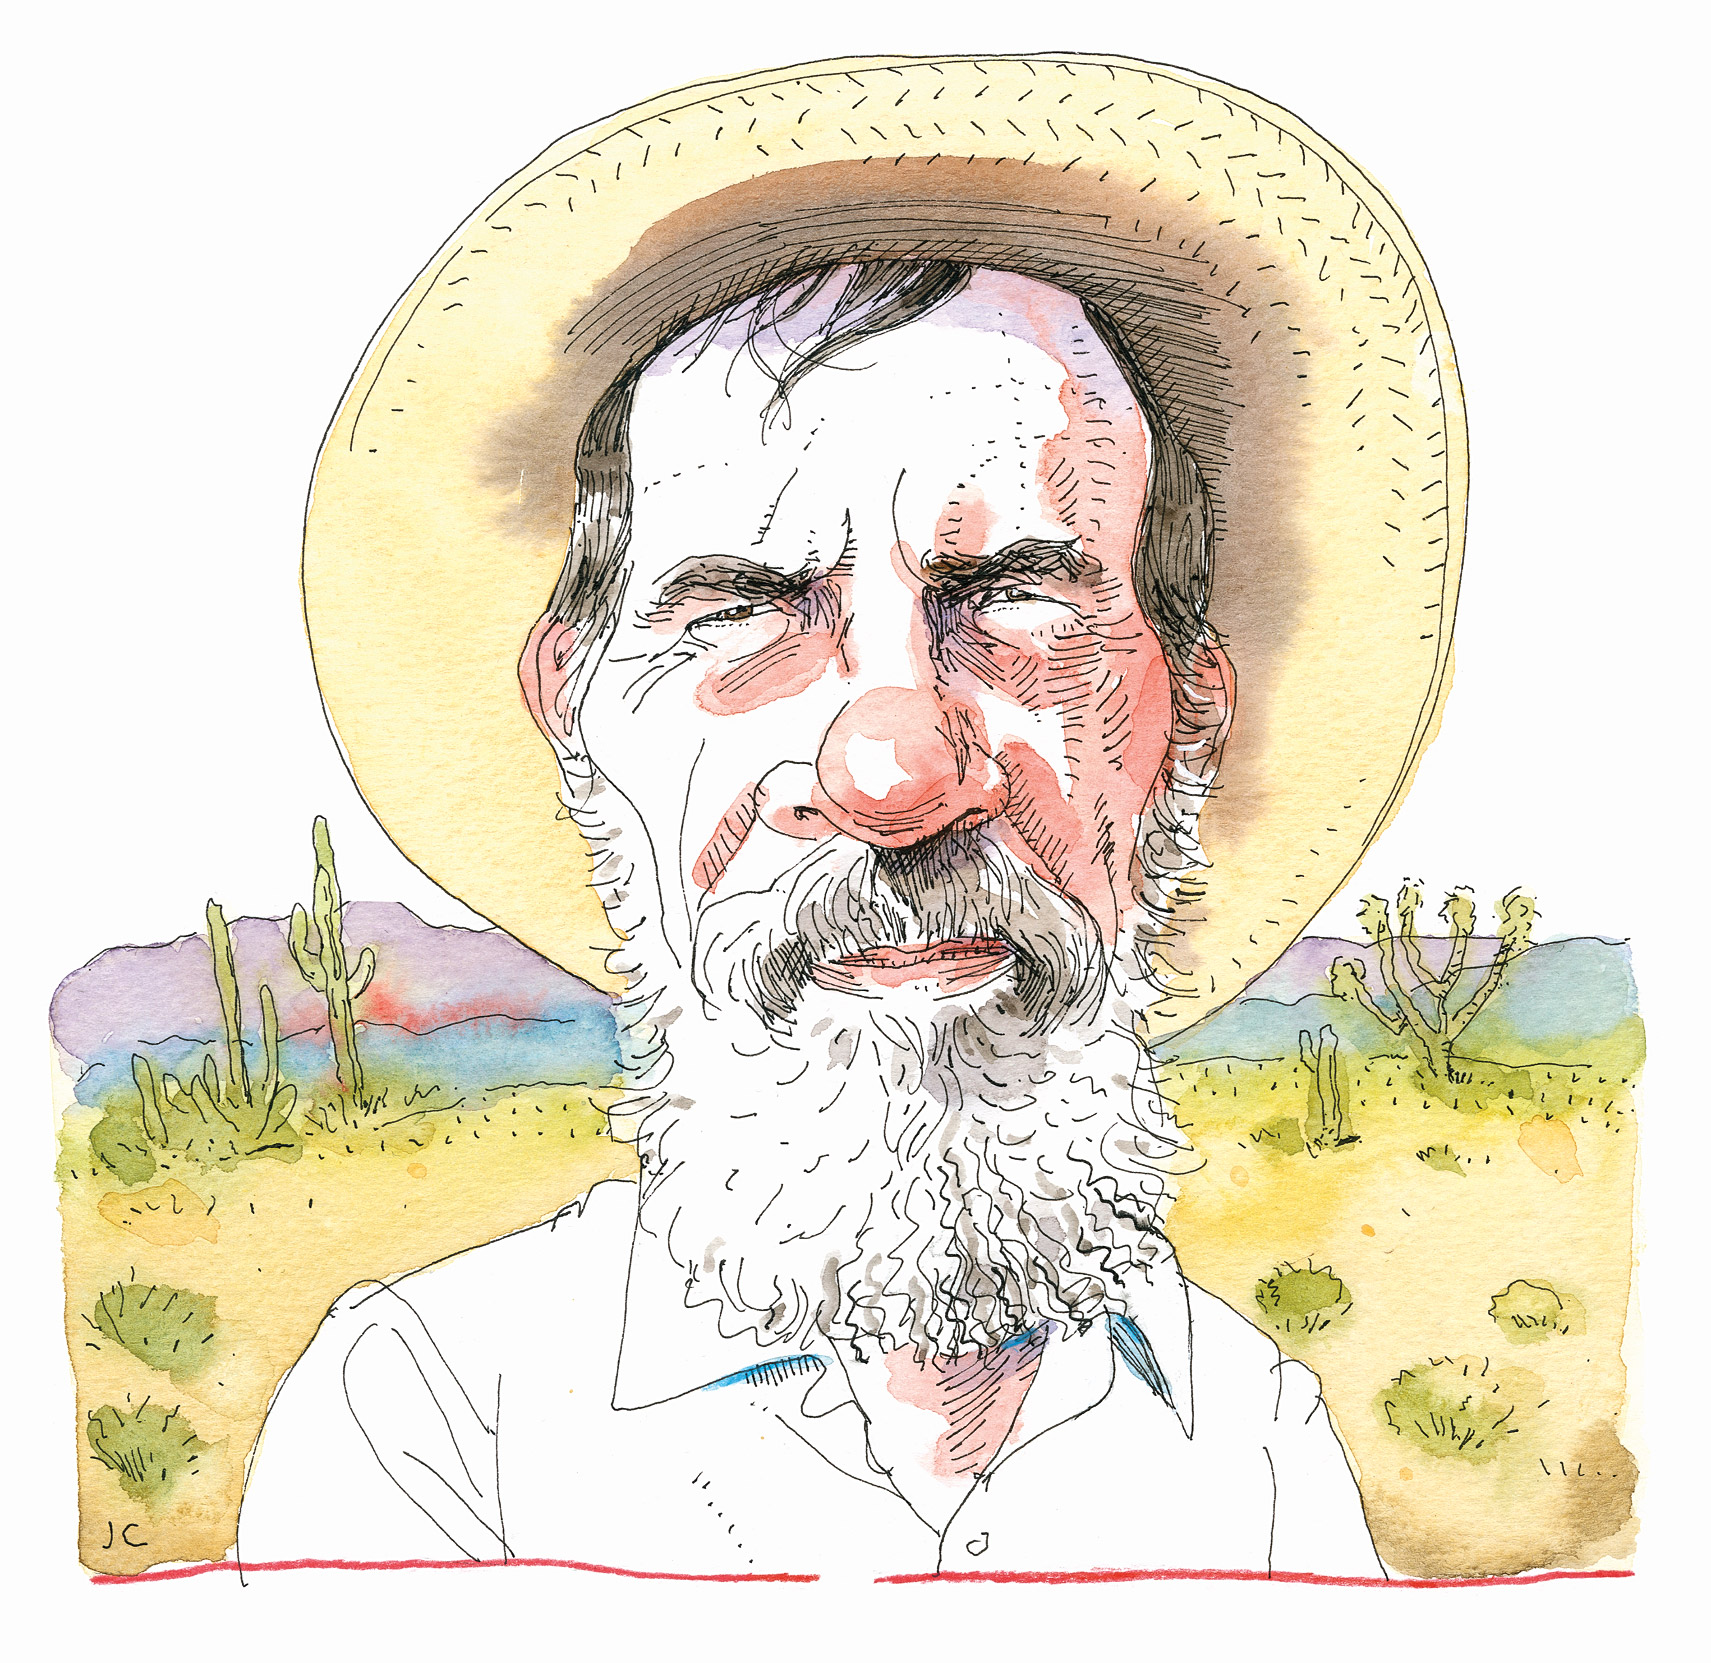 Illustration of Edward Abbey with dessert in the background.